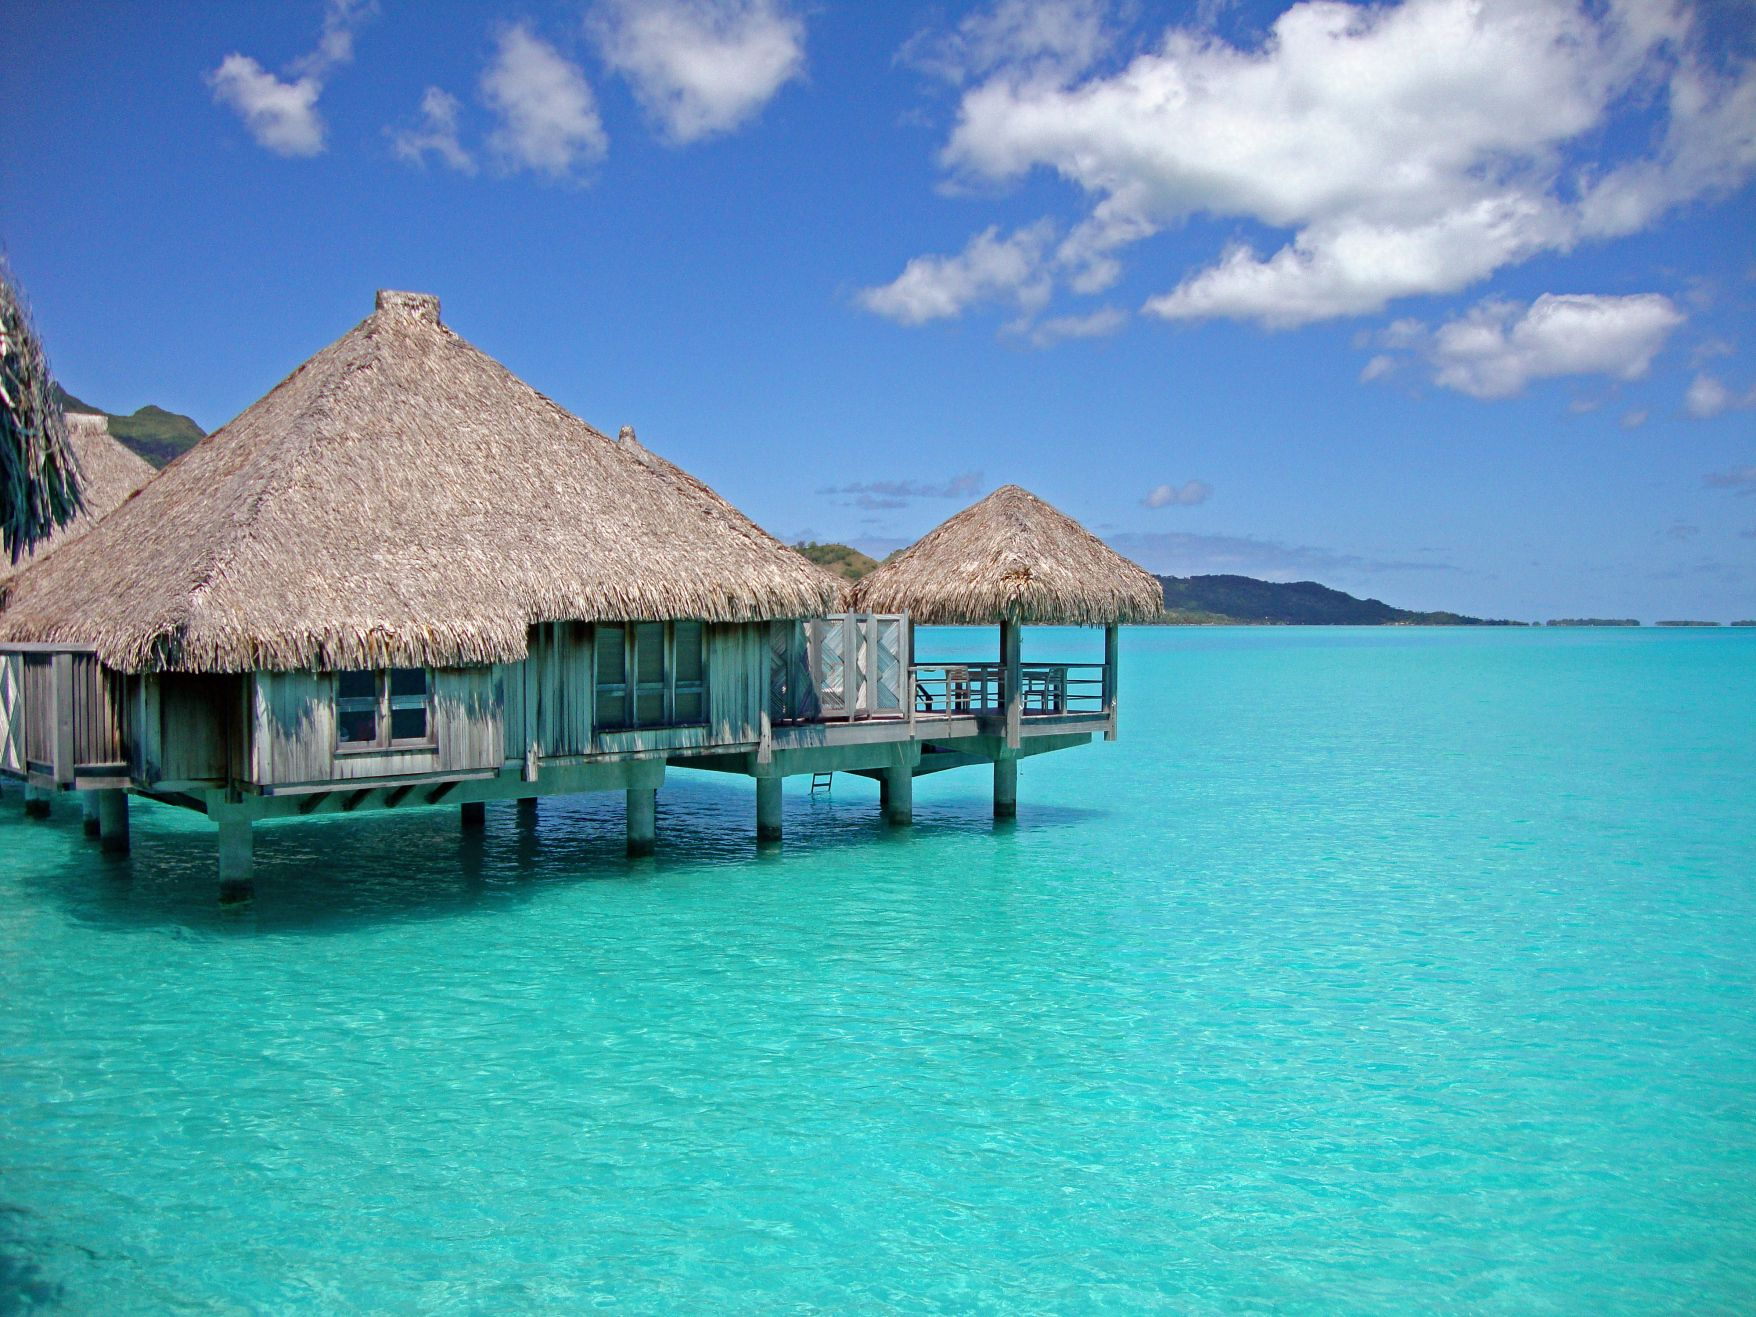 Unique Fiji Overwater Bungalow Check More At Jnnsysy